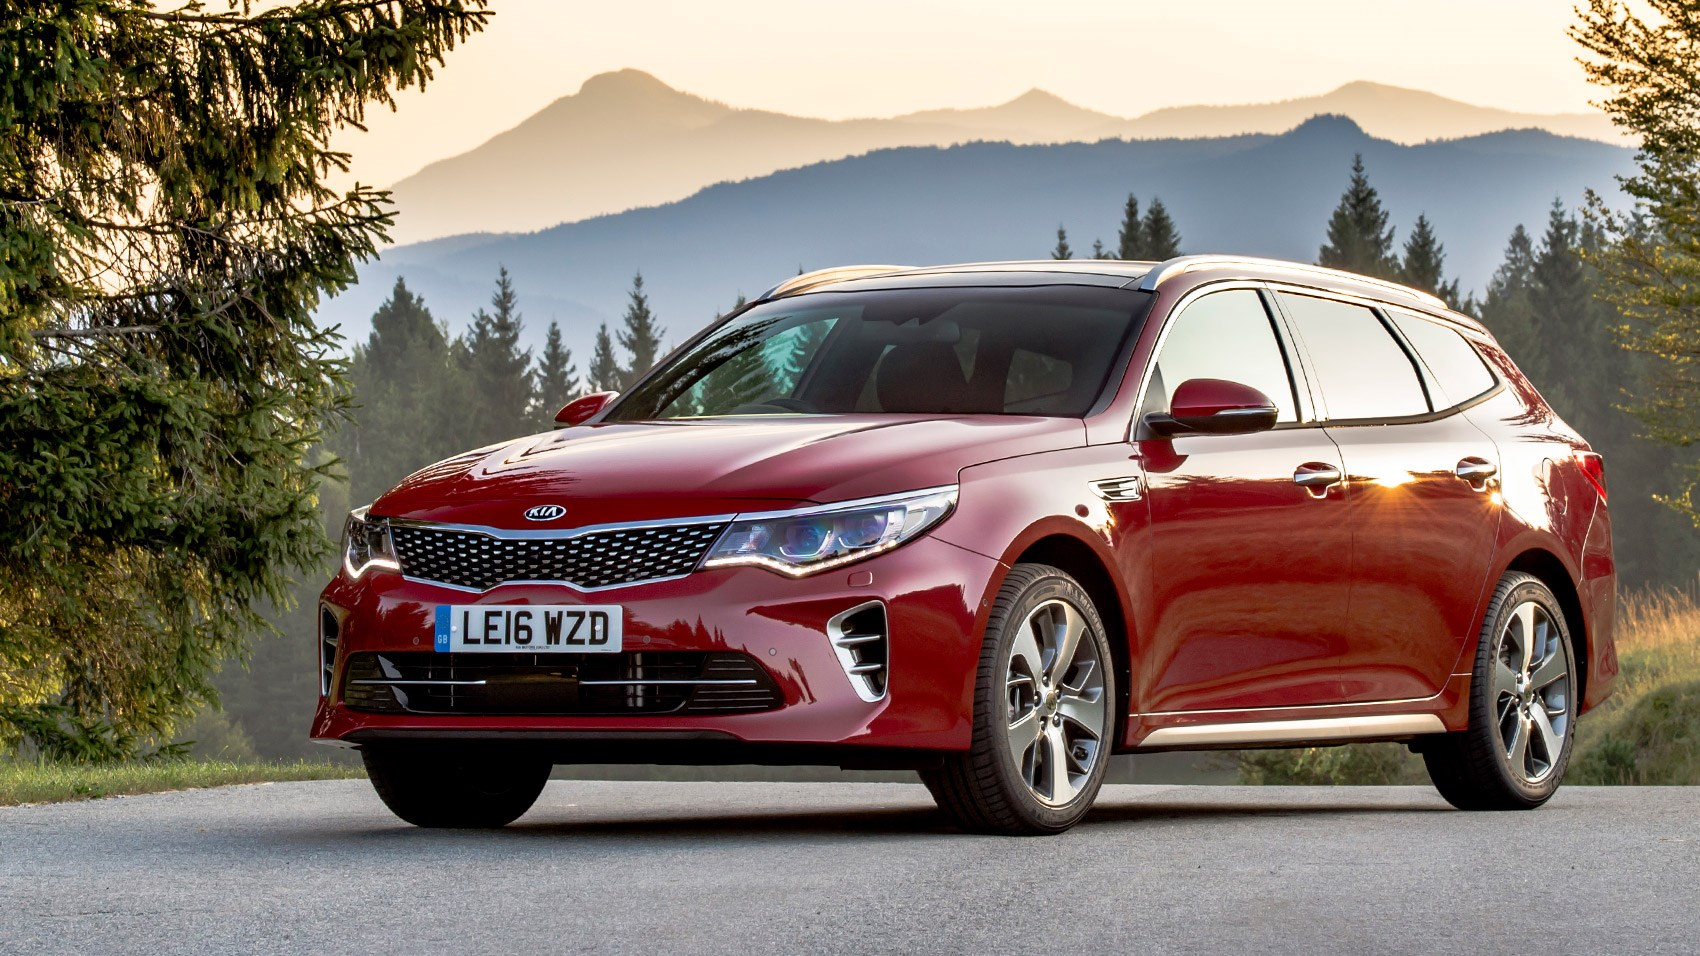 kia optima sportswagon 1 7 crdi gt line s 2016 review by car magazine. Black Bedroom Furniture Sets. Home Design Ideas